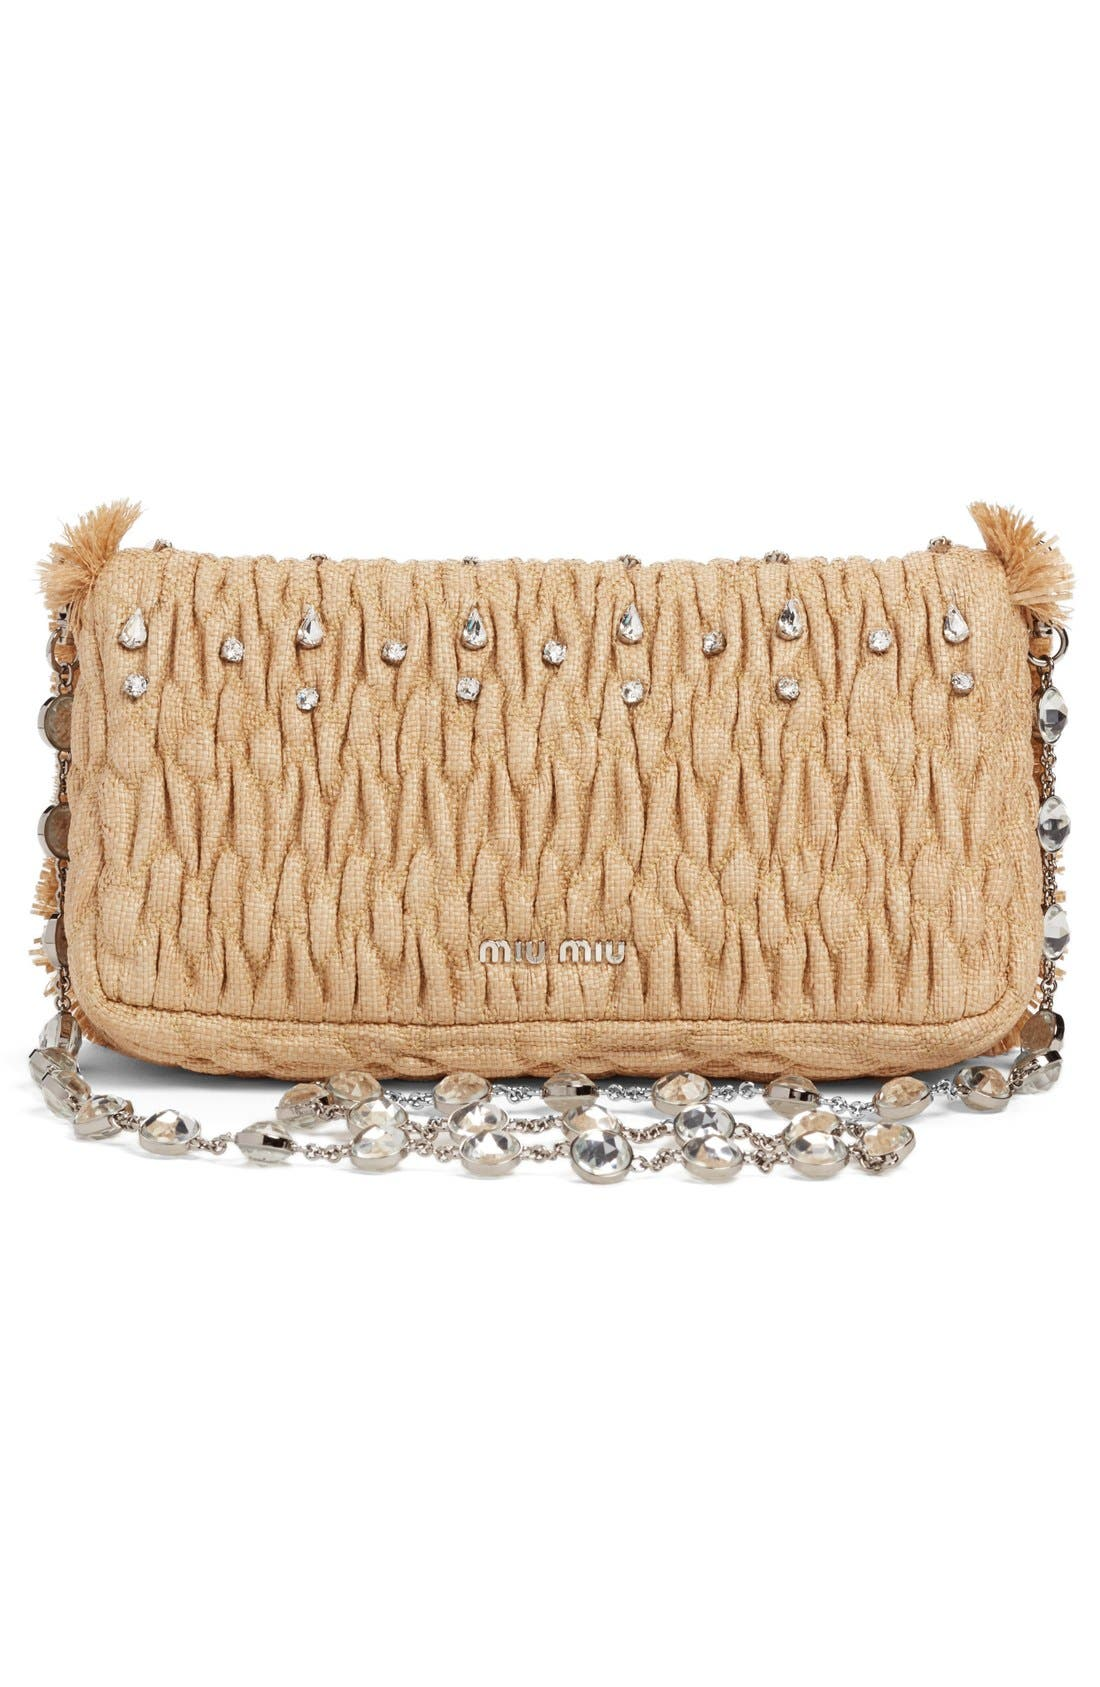 Alternate Image 3  - Miu Miu Paglia Straw Shoulder Bag